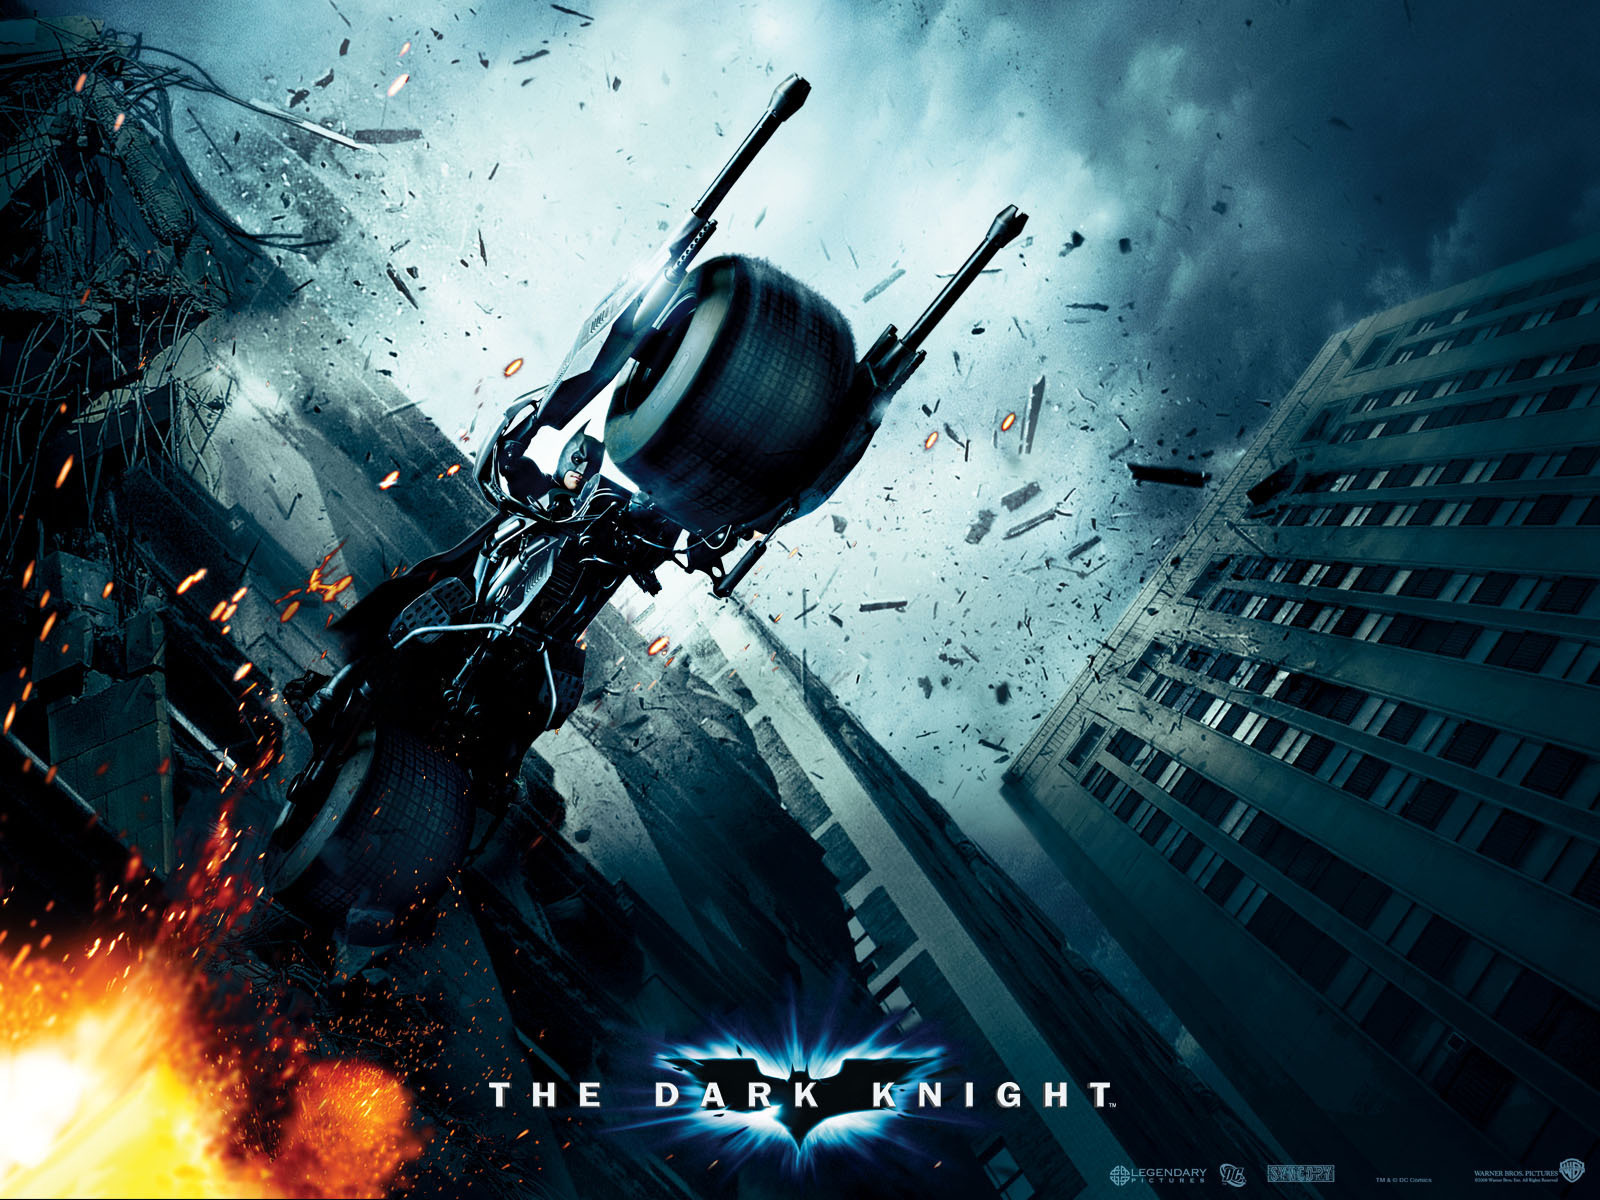 the dark knight images - photo #20